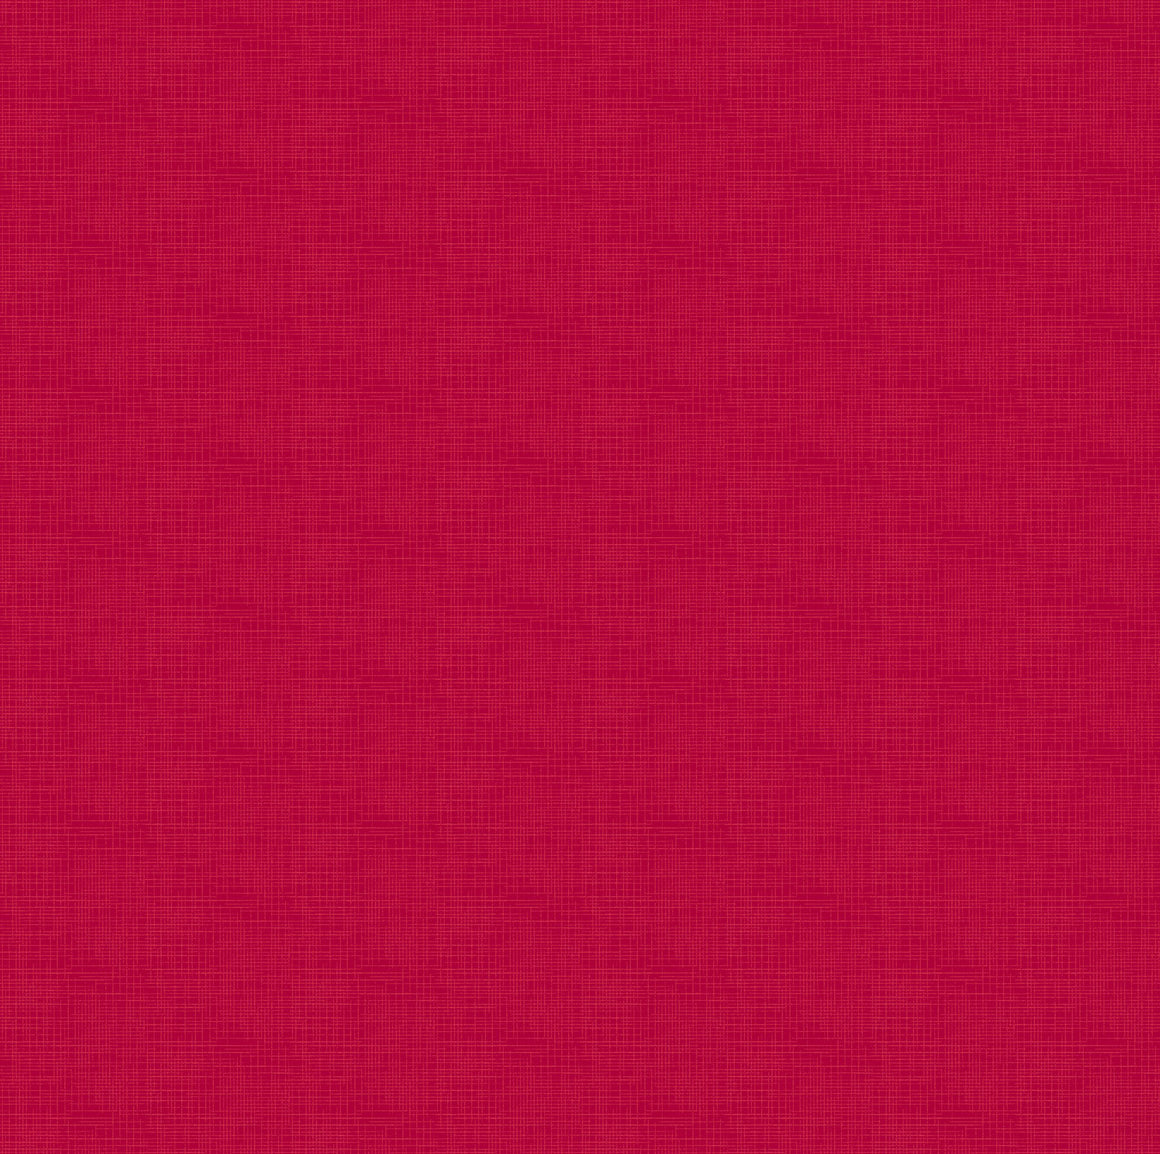 Moulin Rouge - Dublin Texture - 9040-24, Designer Fabric, Northcott, [variant_title] - Mad About Patchwork